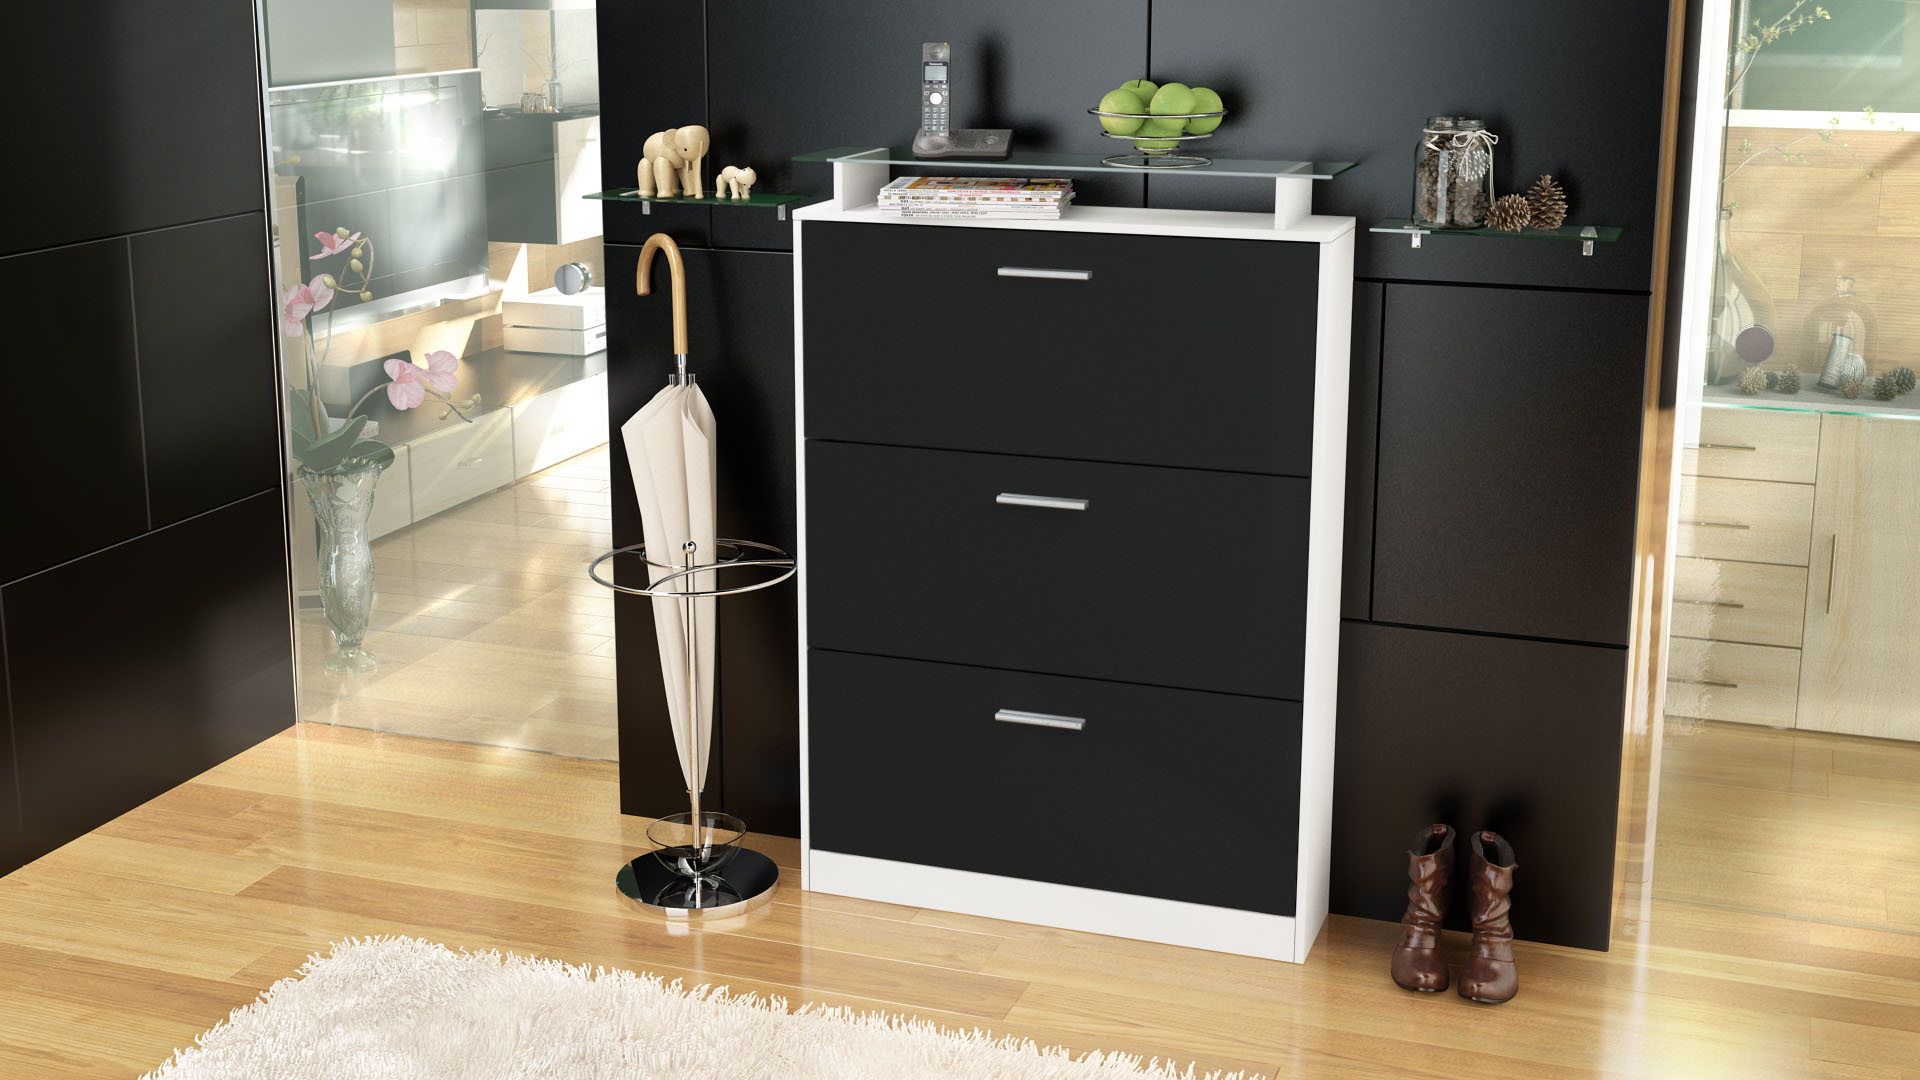 schuhschrank schuhkipper diele flur schrank lavia wei hochglanz naturt ne. Black Bedroom Furniture Sets. Home Design Ideas